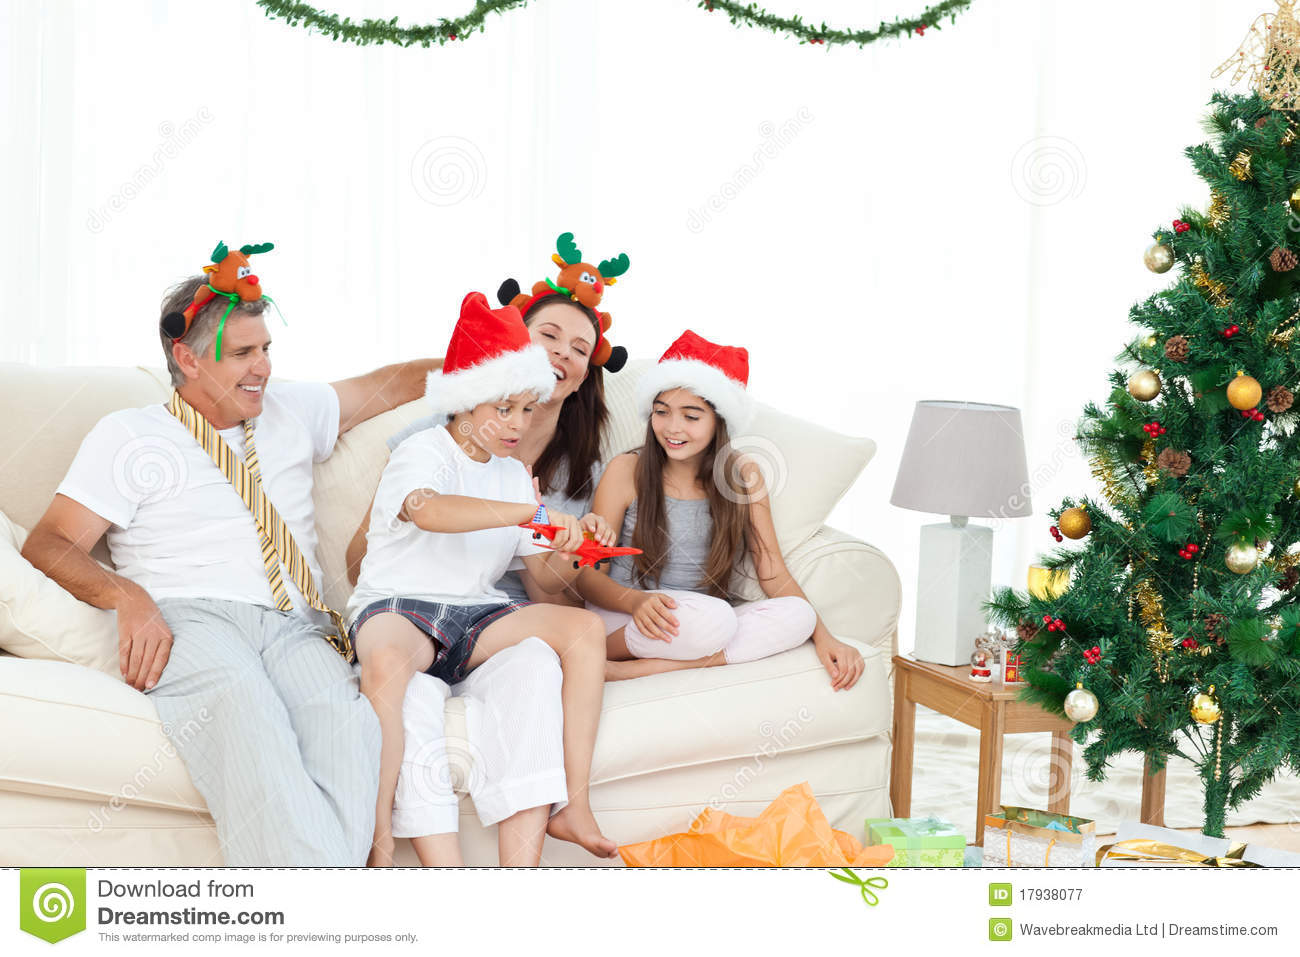 Family During Christmas Day Looking Stock Image - Image of child, event: 17938077